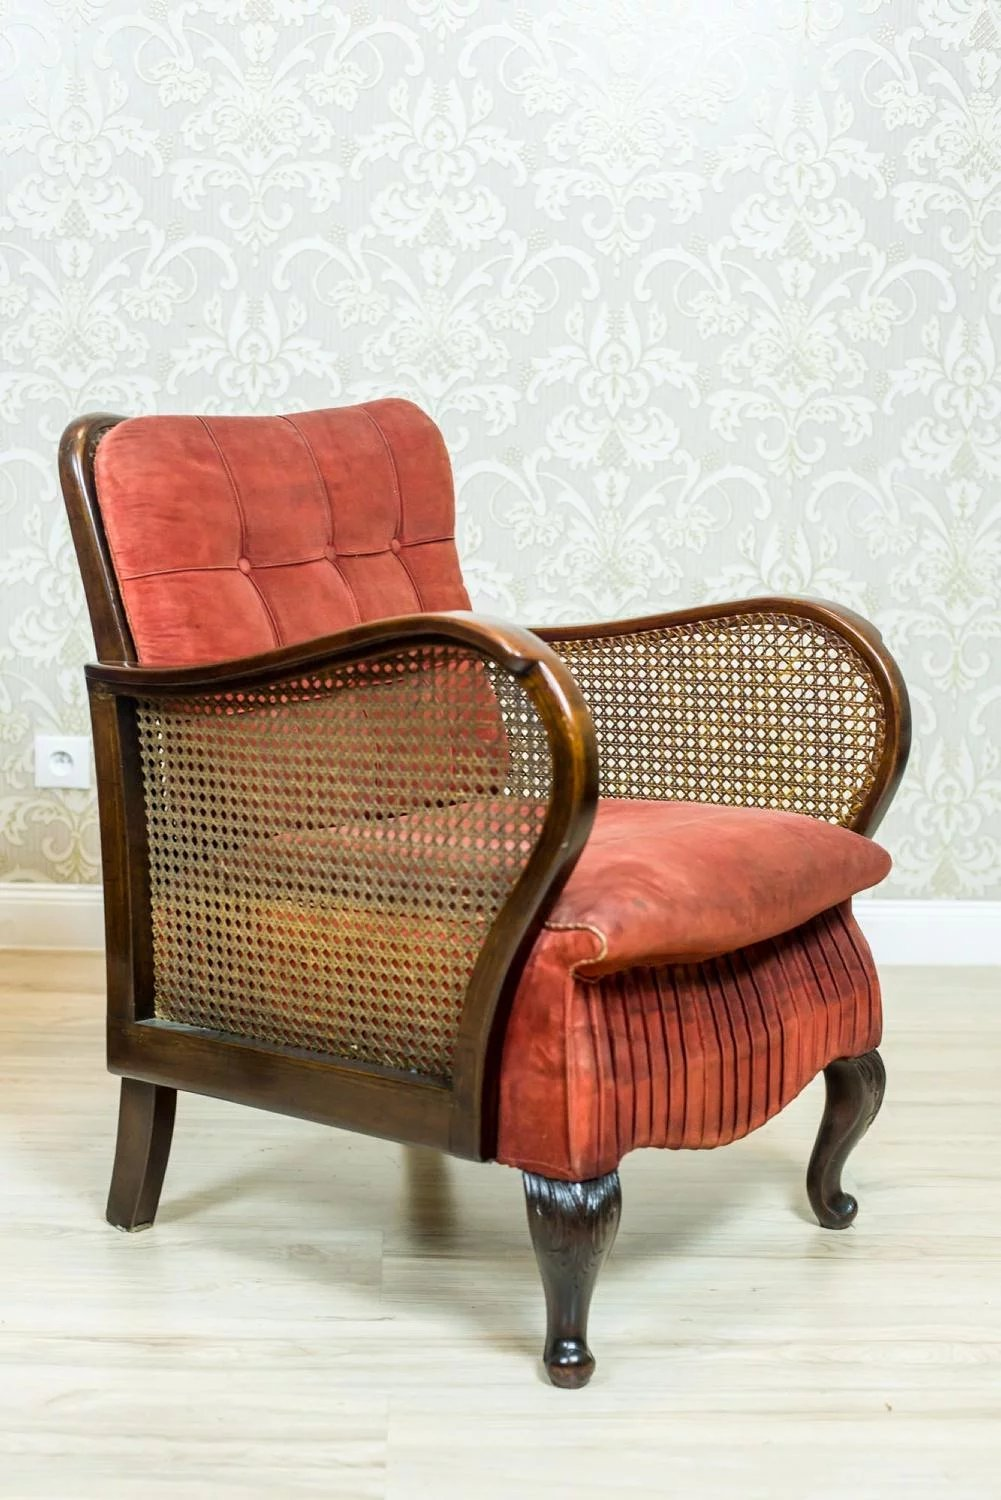 Two Thonet Armchairs from the 1920s : Antique Beauty ...